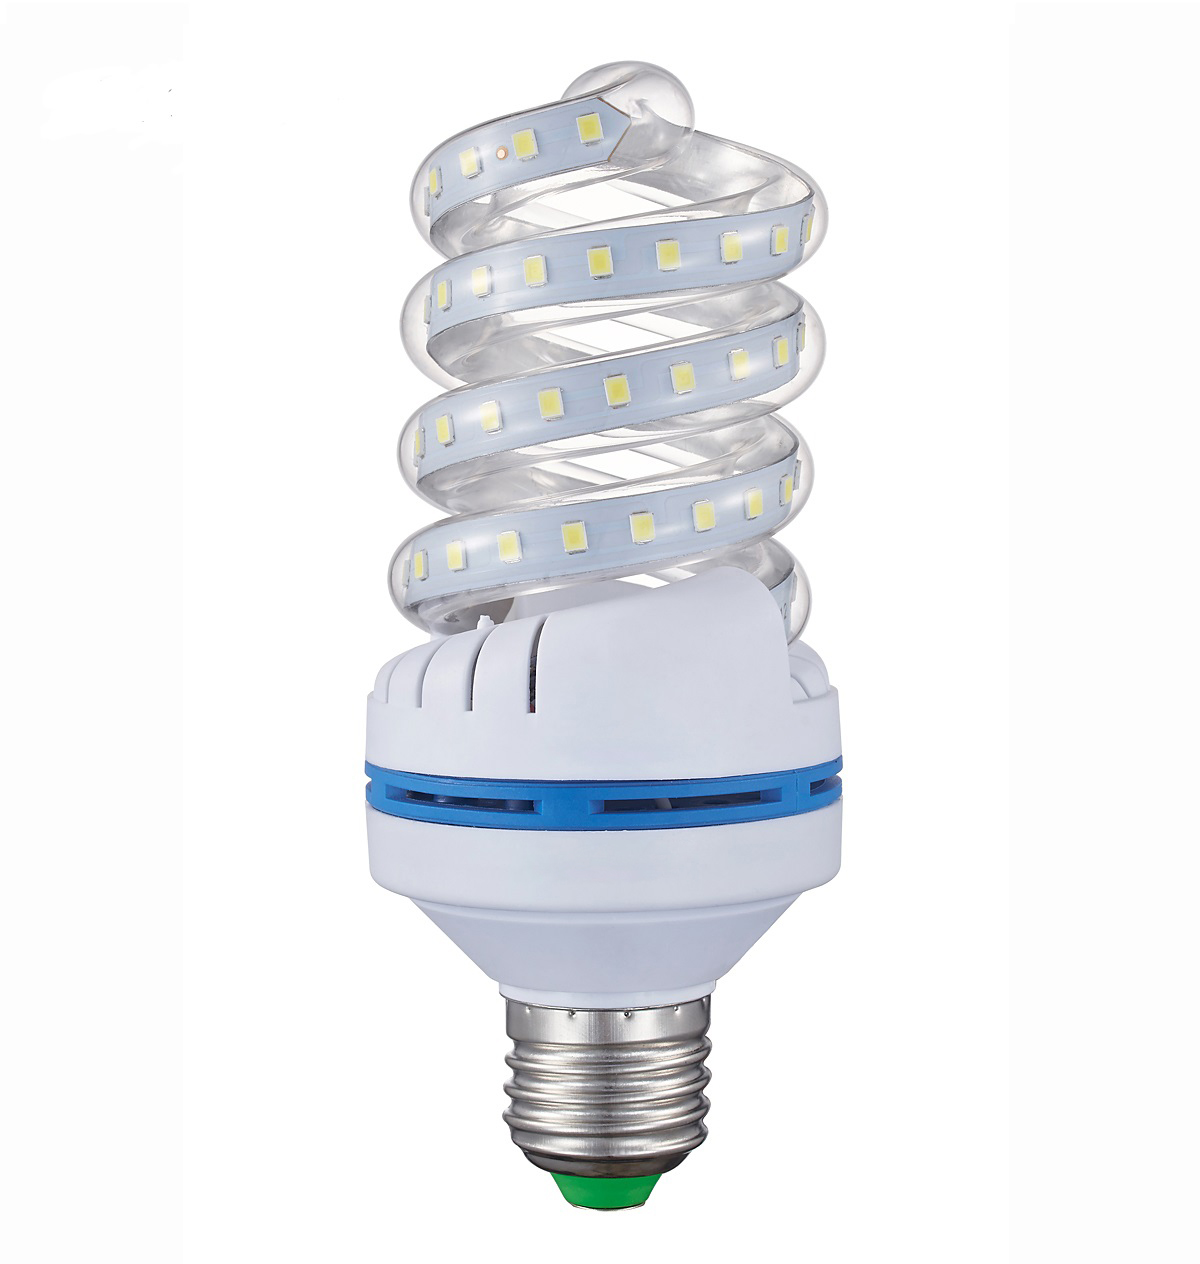 12W SPIRAL CORN LED BULBS